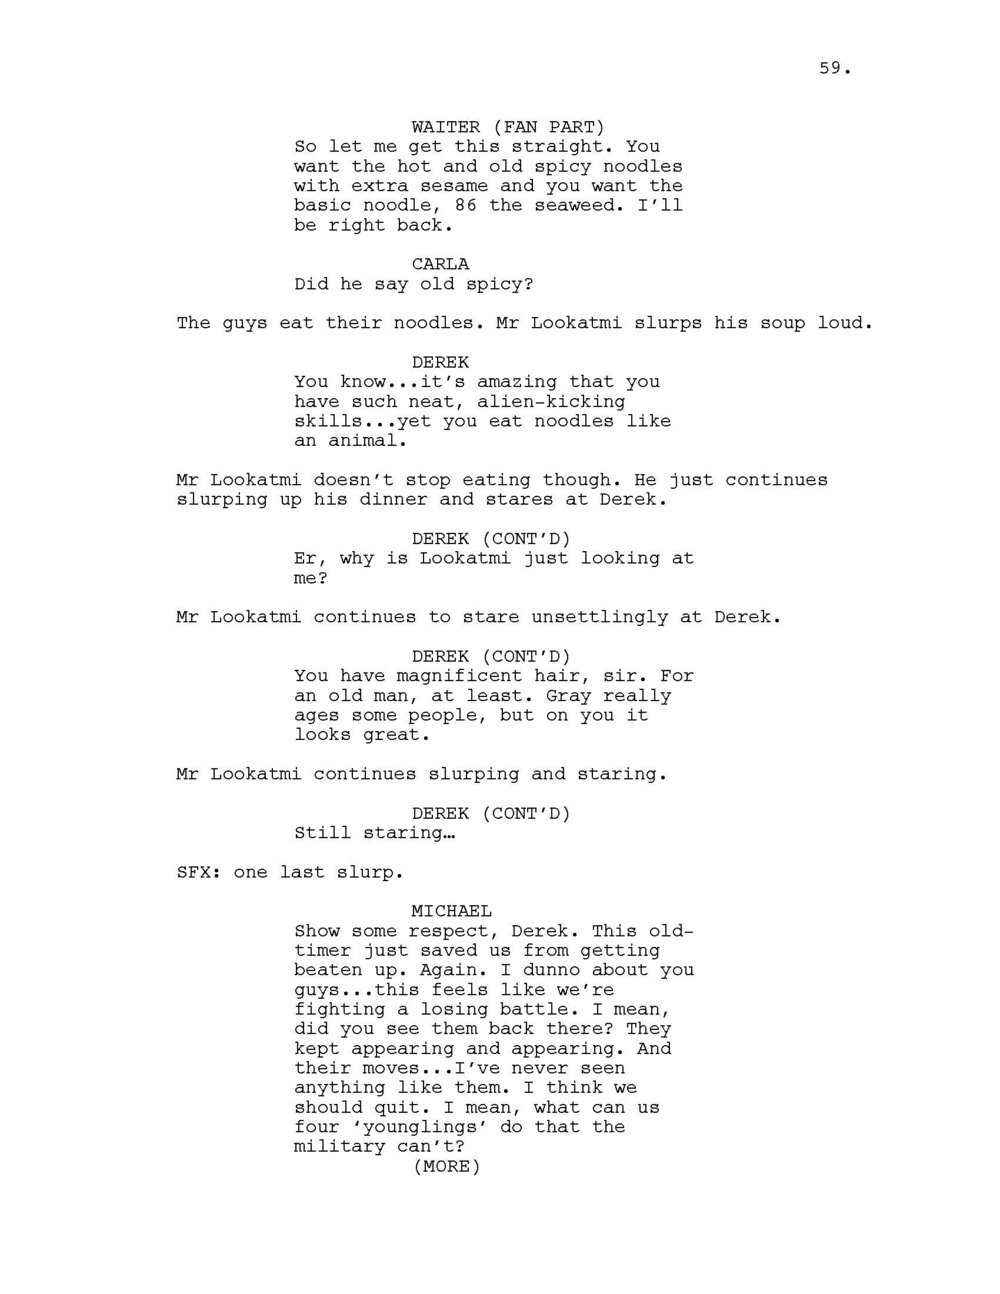 INVISIBLE WORLD SCRIPT_Page_060.jpg